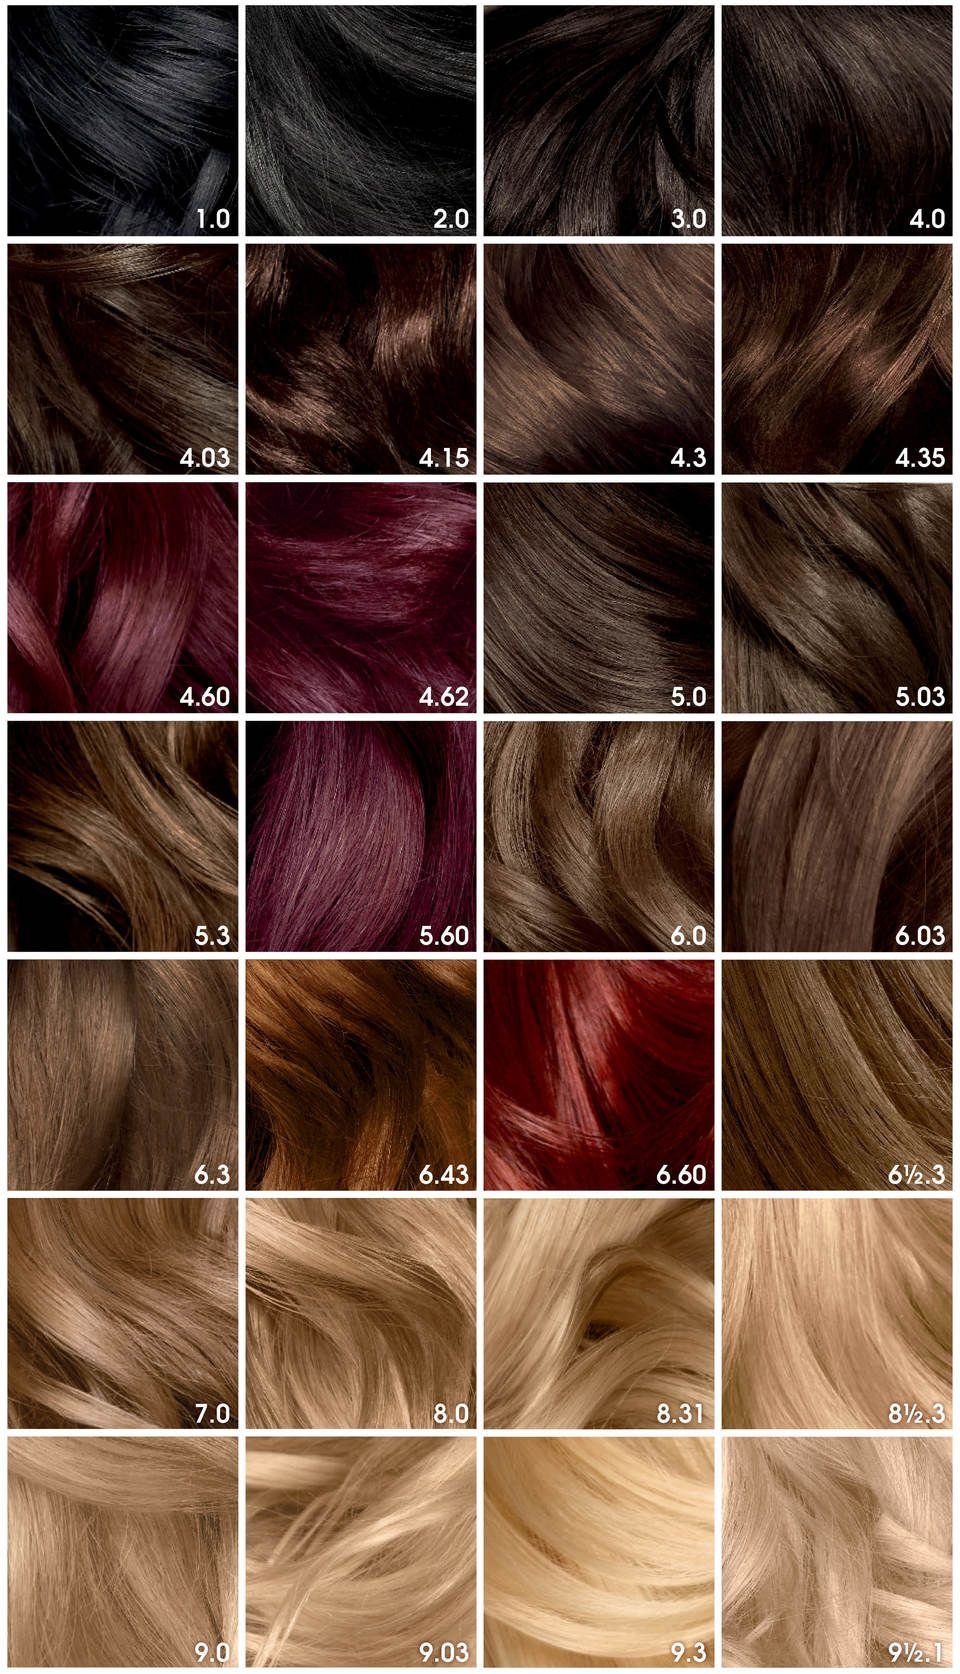 Olia 9 1 2 1 Lightest Cool Blonde 1 Application Olia Hair Color Hair Color Chart Hair Color Shades